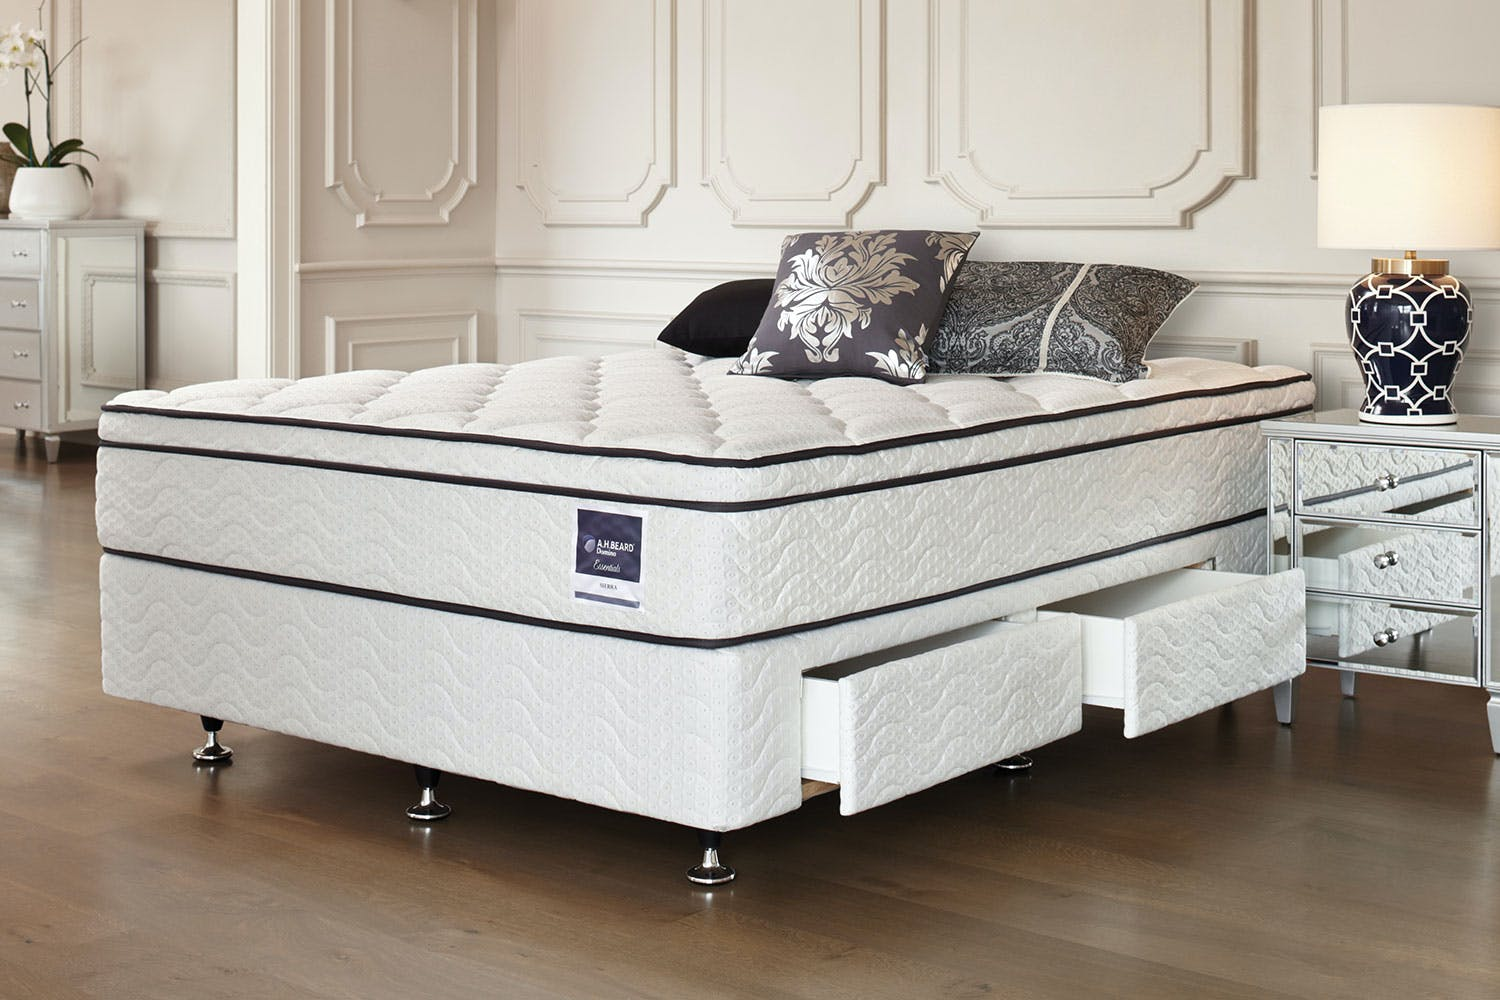 Sierra Queen Bed with Drawer Base by A.H. Beard | Harvey Norman New ...